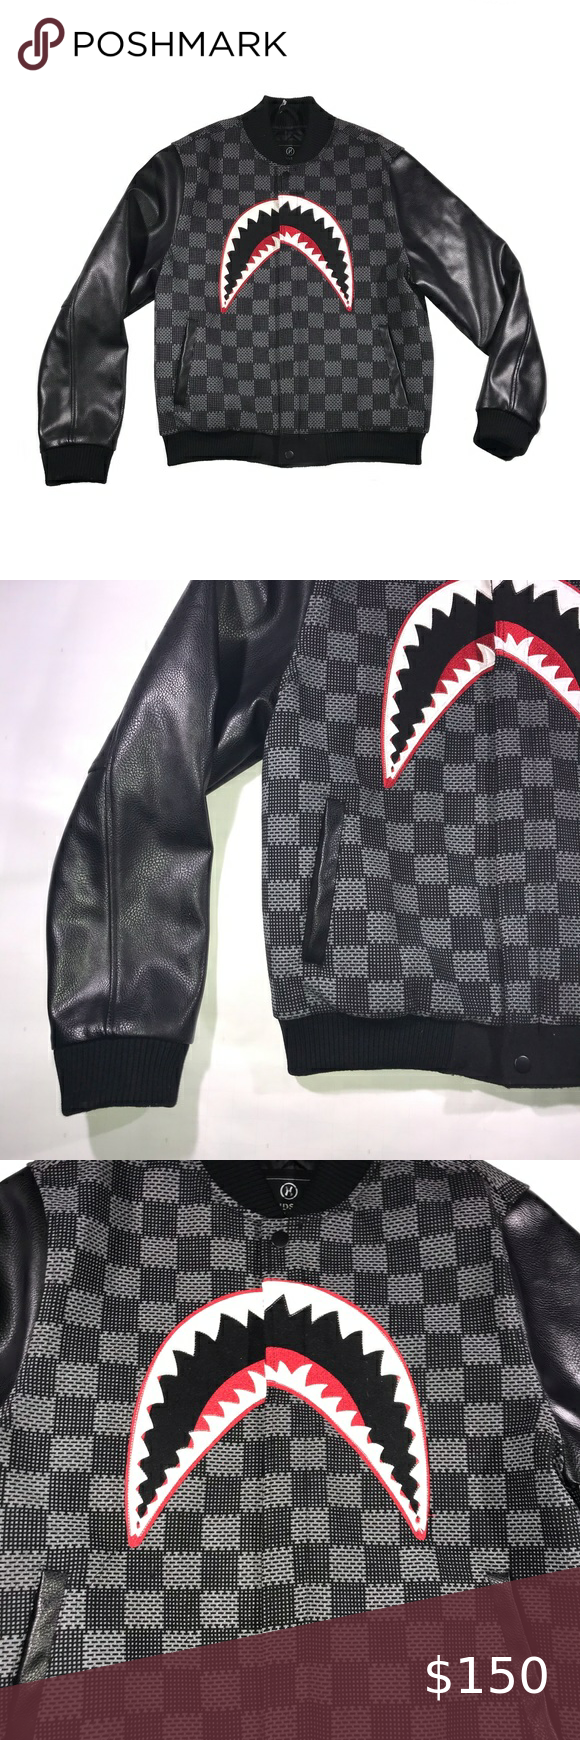 Hudson Outerwear Shark Mouth Leather Jacket Leather Jacket Outerwear Leather Sleeve [ 1740 x 580 Pixel ]